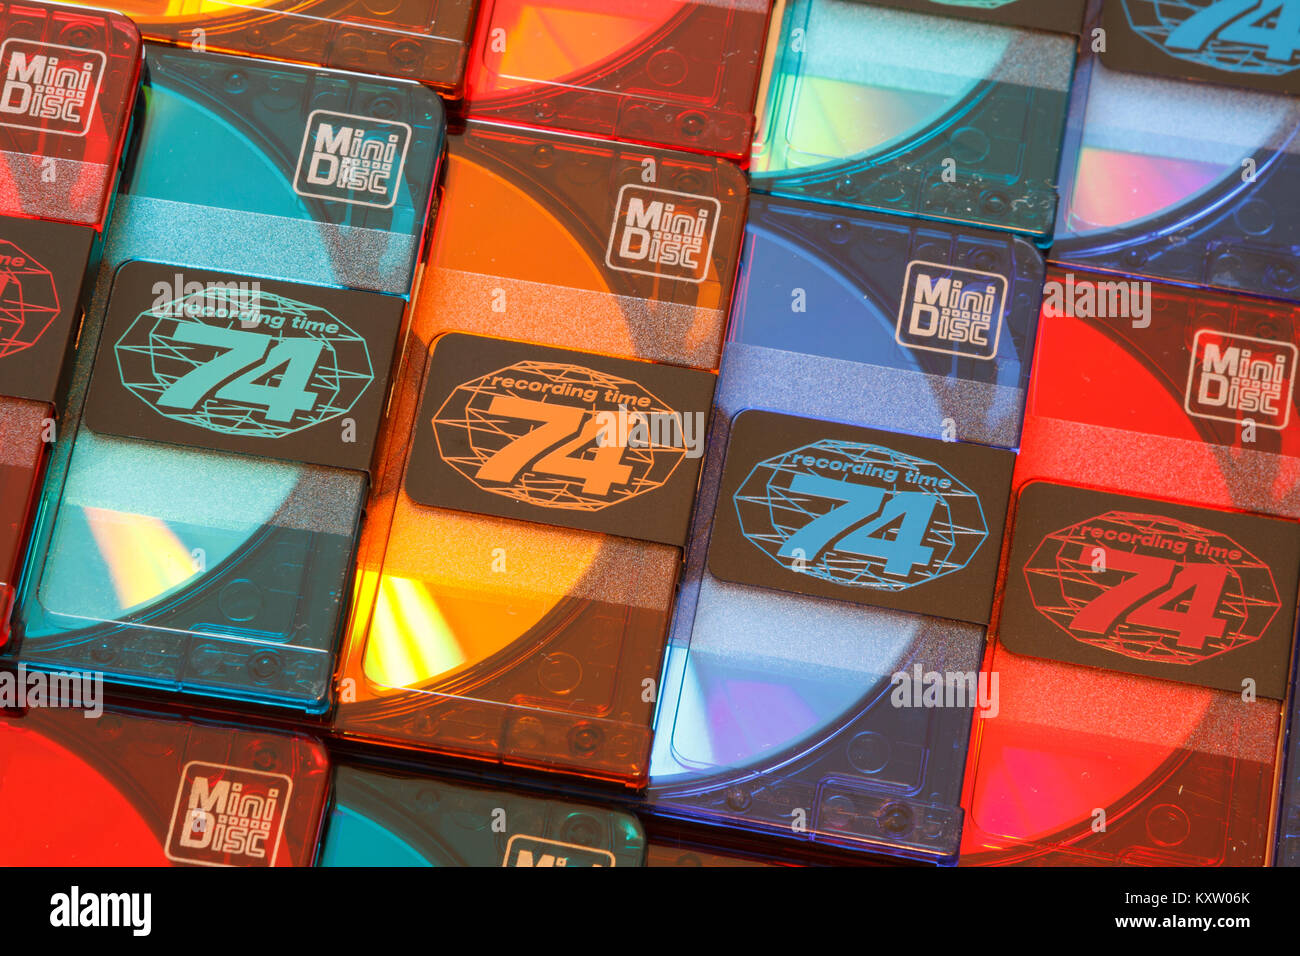 Close up view of a few rows of blank colorful audio minidiscs cartridges with a recording time of 74 minutes. - Stock Image